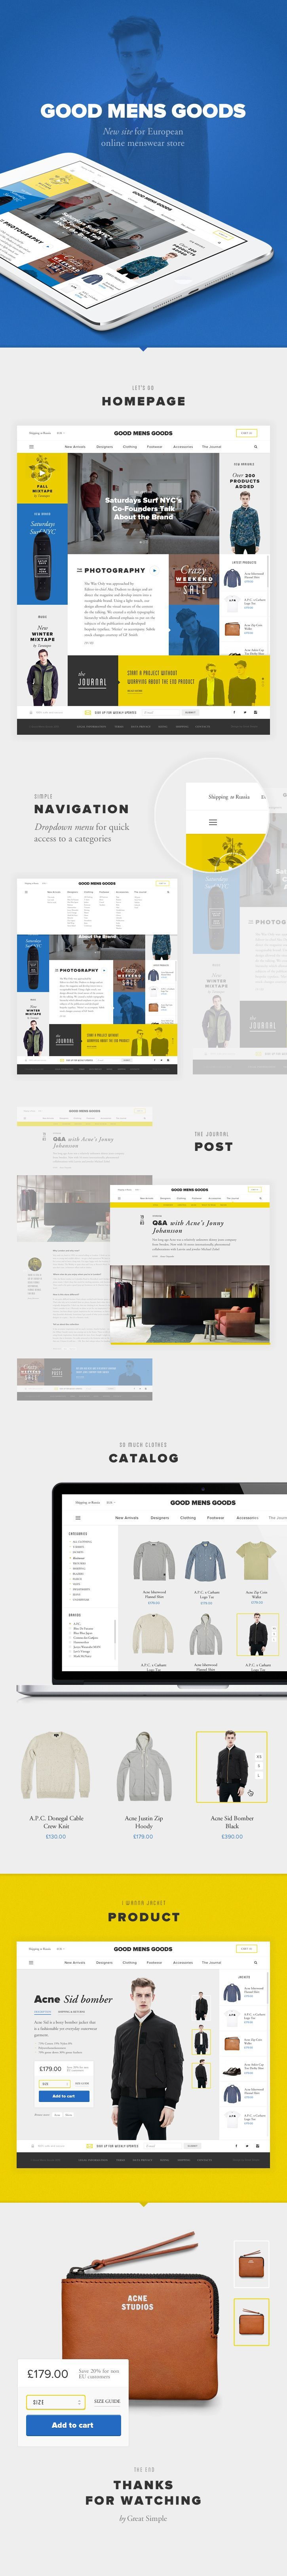 it's clean. love the product detail page. big background image and combination of typefaces in title. #ecommerce #webdesign